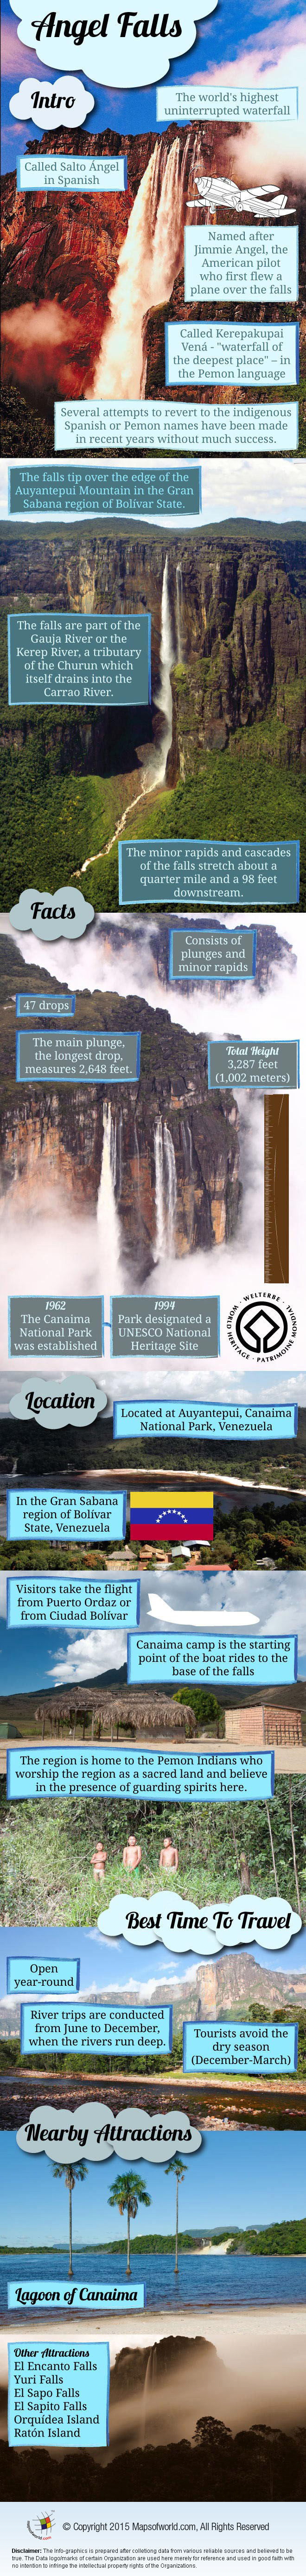 Angel Falls Infographic